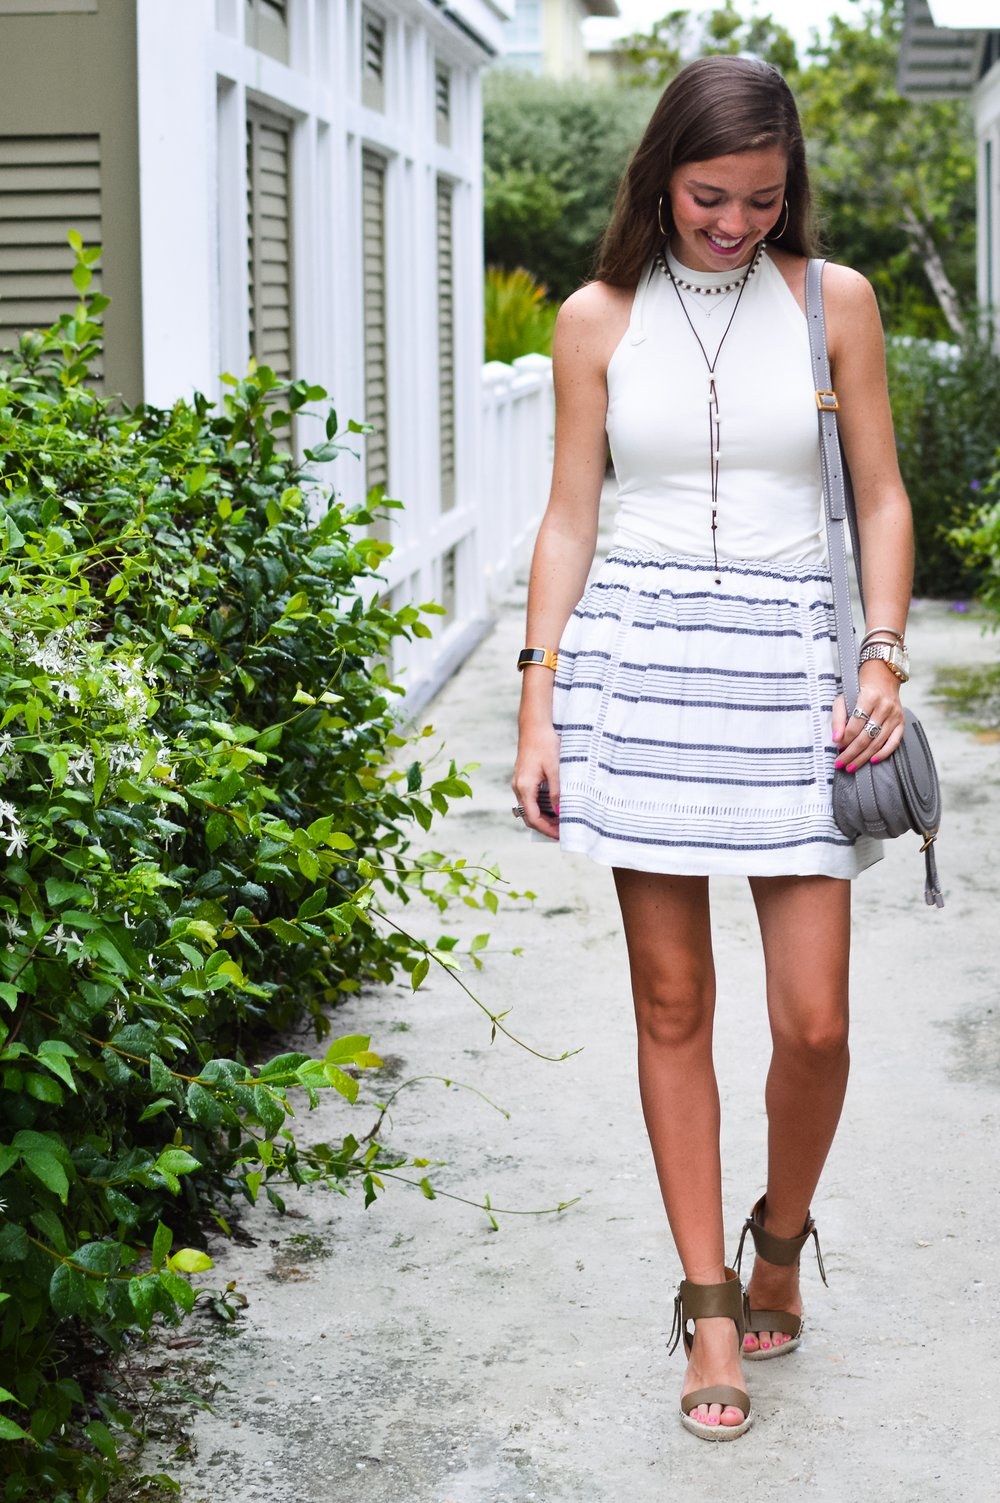 fashion blogger lcb style seaside florida rachel pally  (2 of 11).jpg